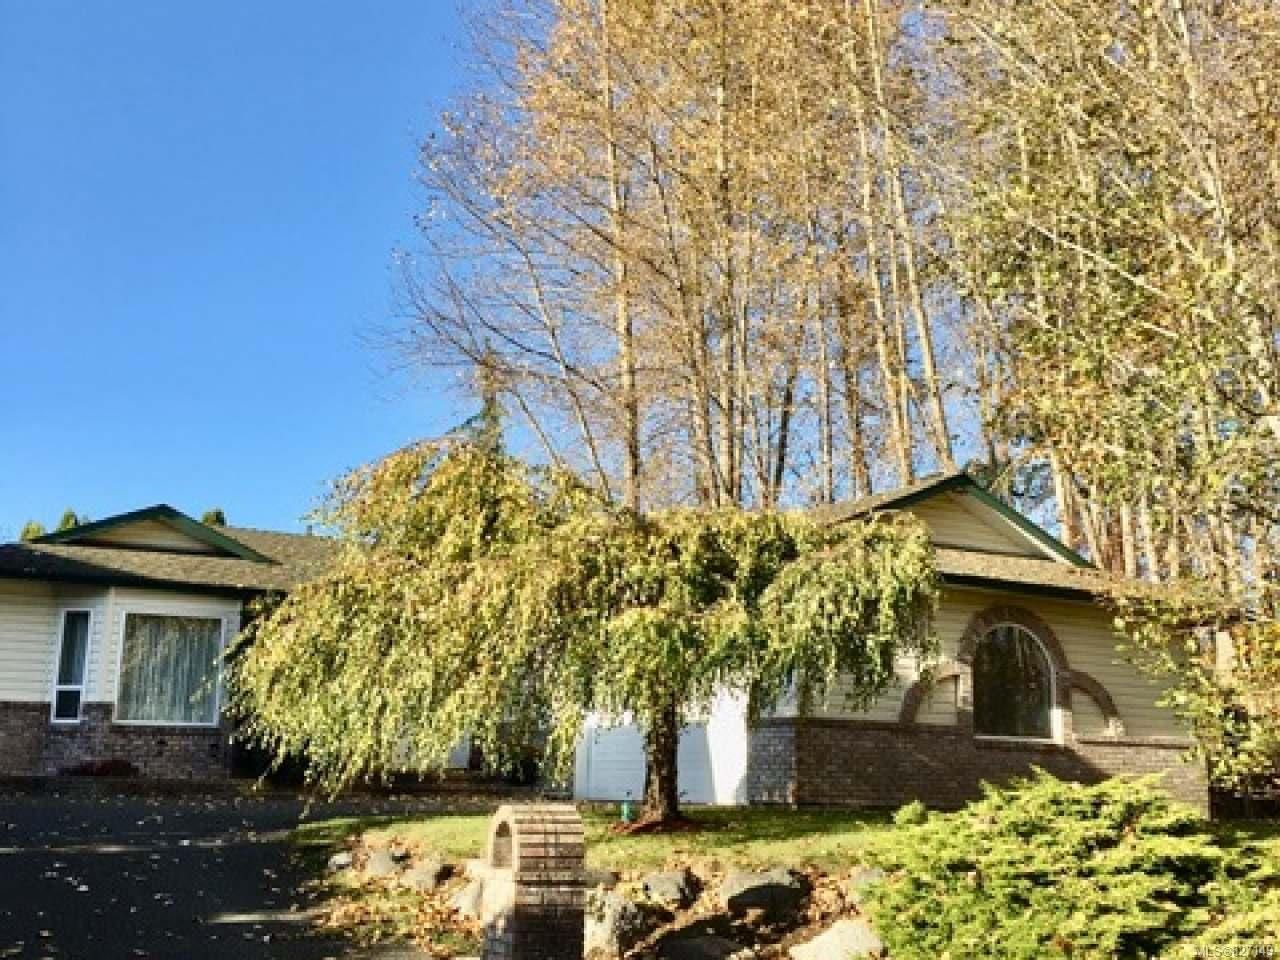 Main Photo: 691 Cooper St in CAMPBELL RIVER: CR Willow Point House for sale (Campbell River)  : MLS®# 827149